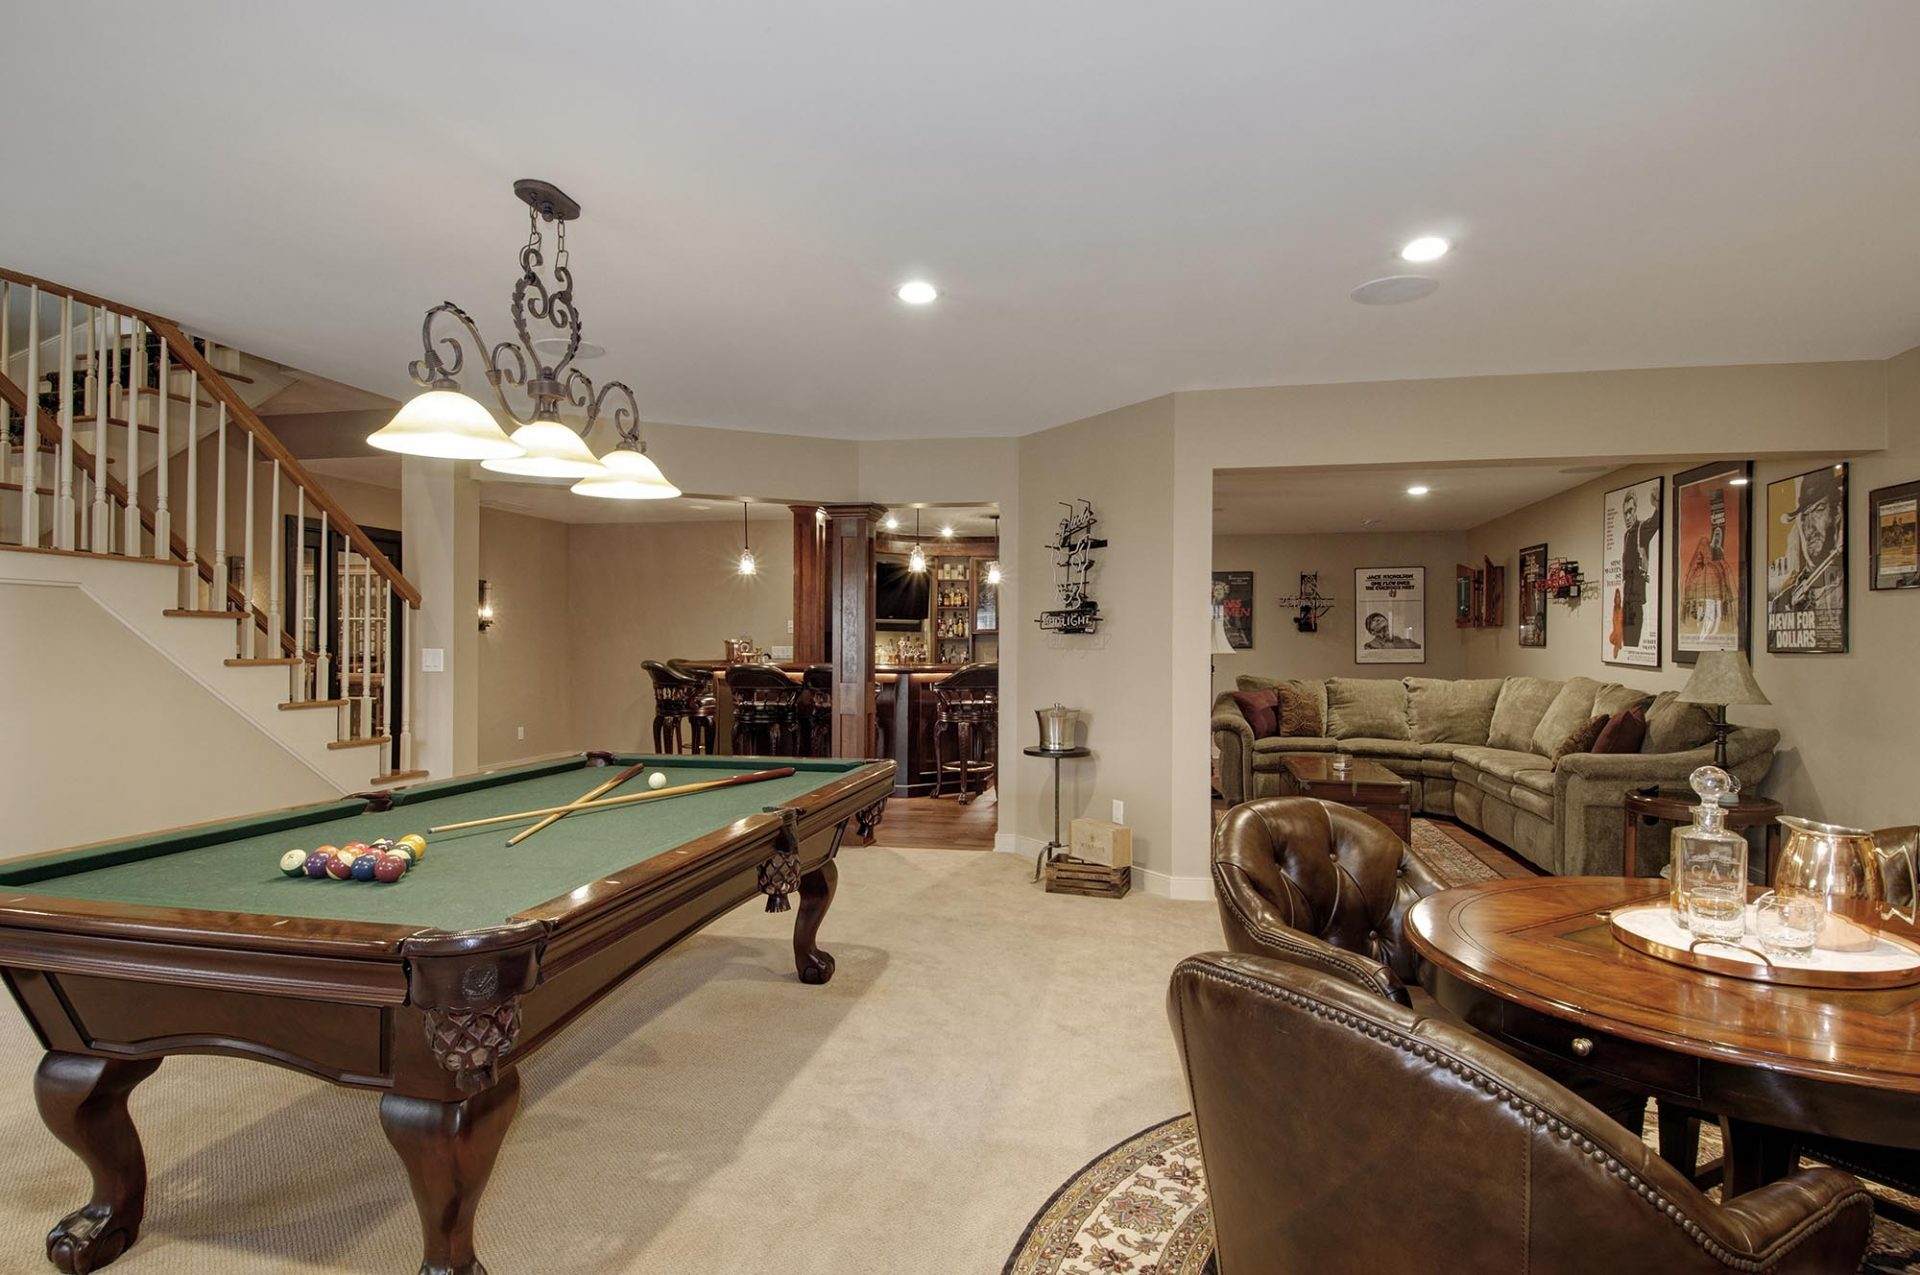 Basement, Sunbury, Dave Fox, Remodel, bar, wood, wine cellar, stacked stone, fireplace